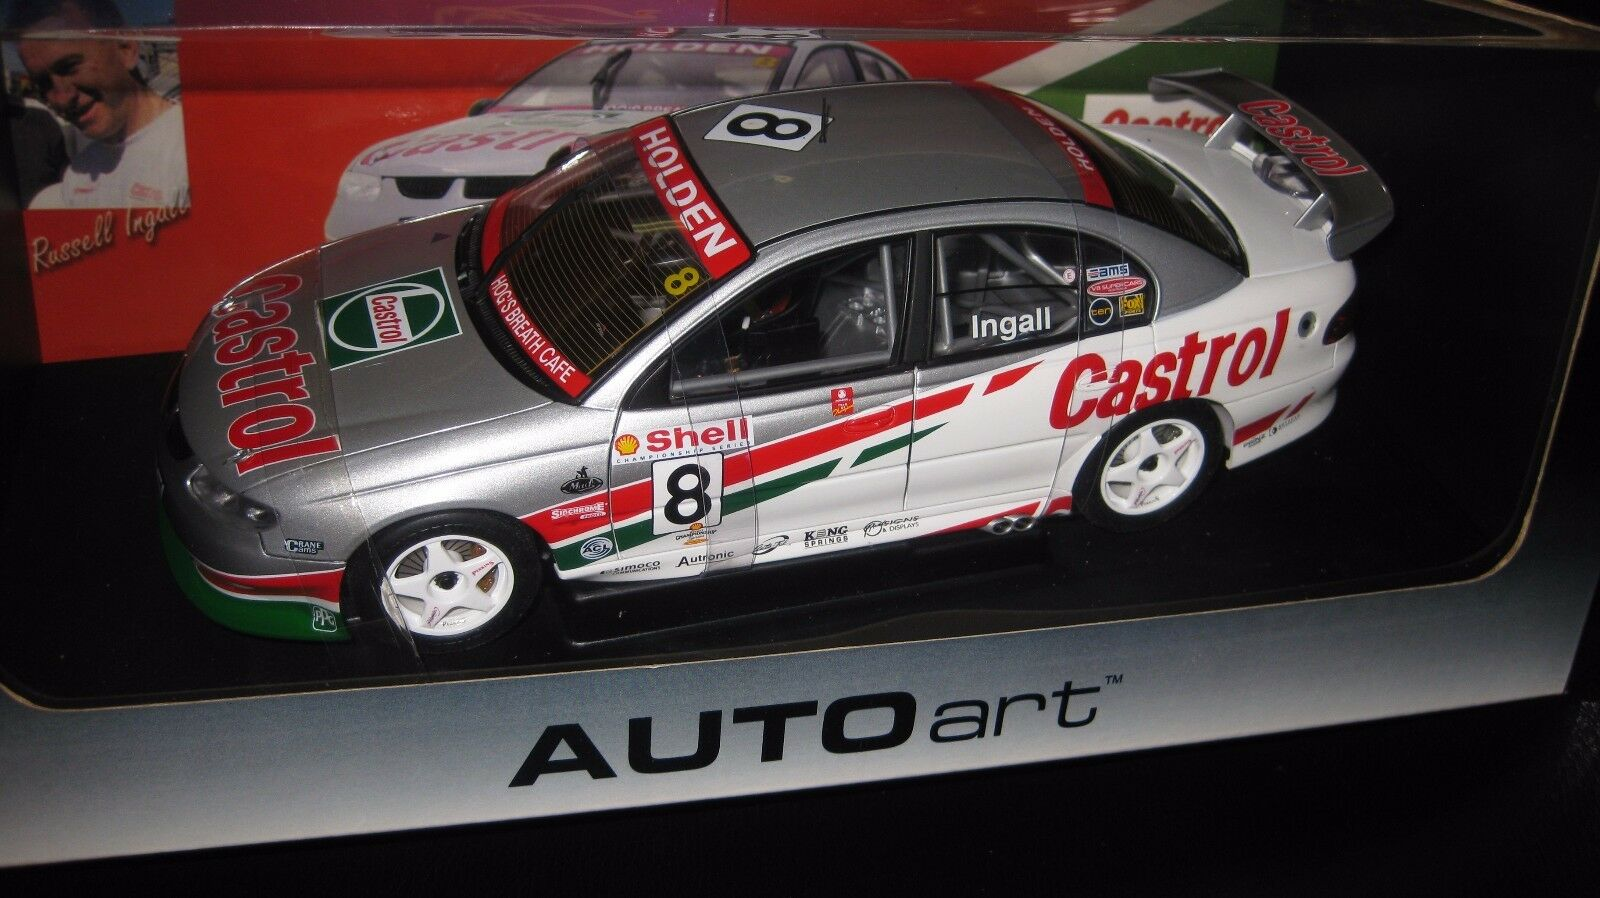 Autoart 1   18 holden vt commodore russell ingall 2000 saison v8 supercars   8.